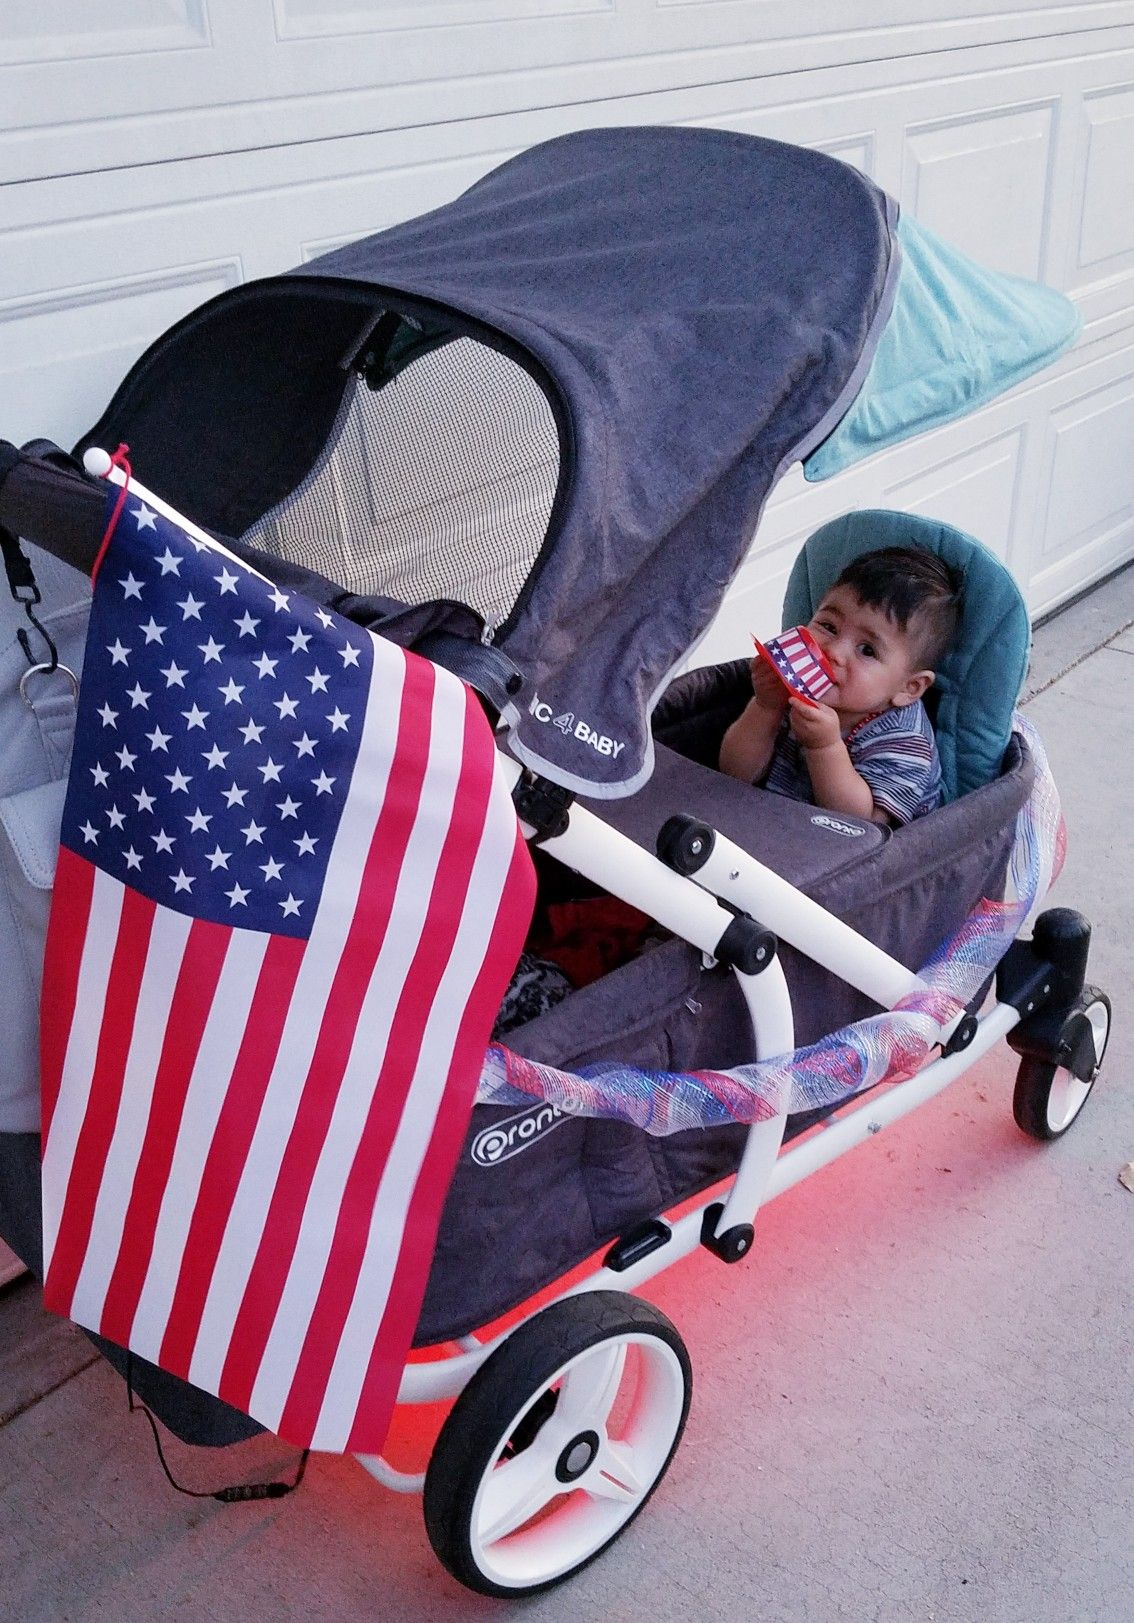 Fourth of July in the Pronto stroller. With LED lights